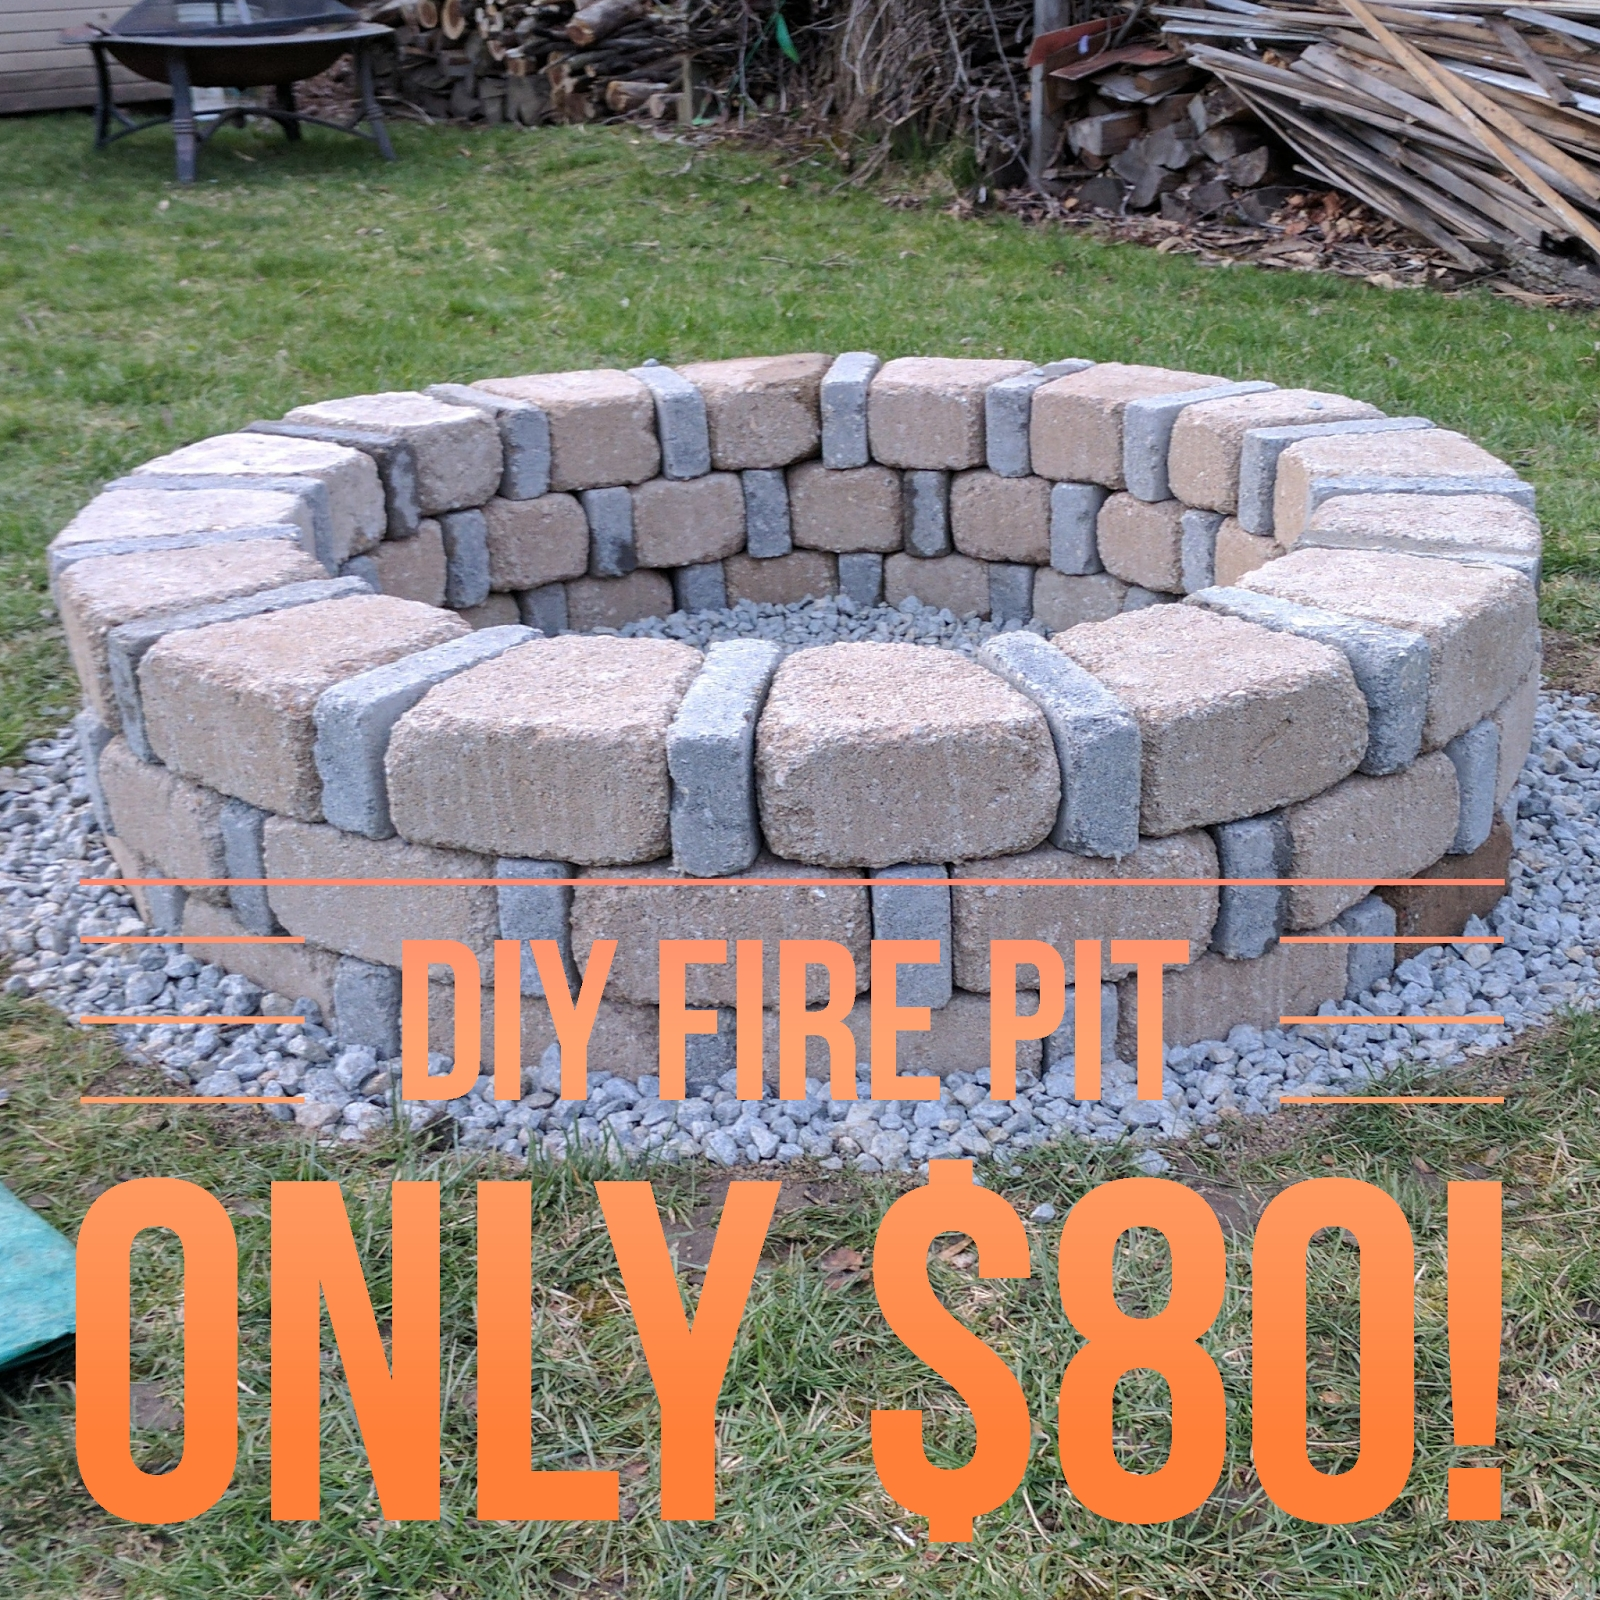 10 Spectacular Do It Yourself Fire Pit Ideas easy diy fire pit for only 80 from menards diy pinterest diy 2021